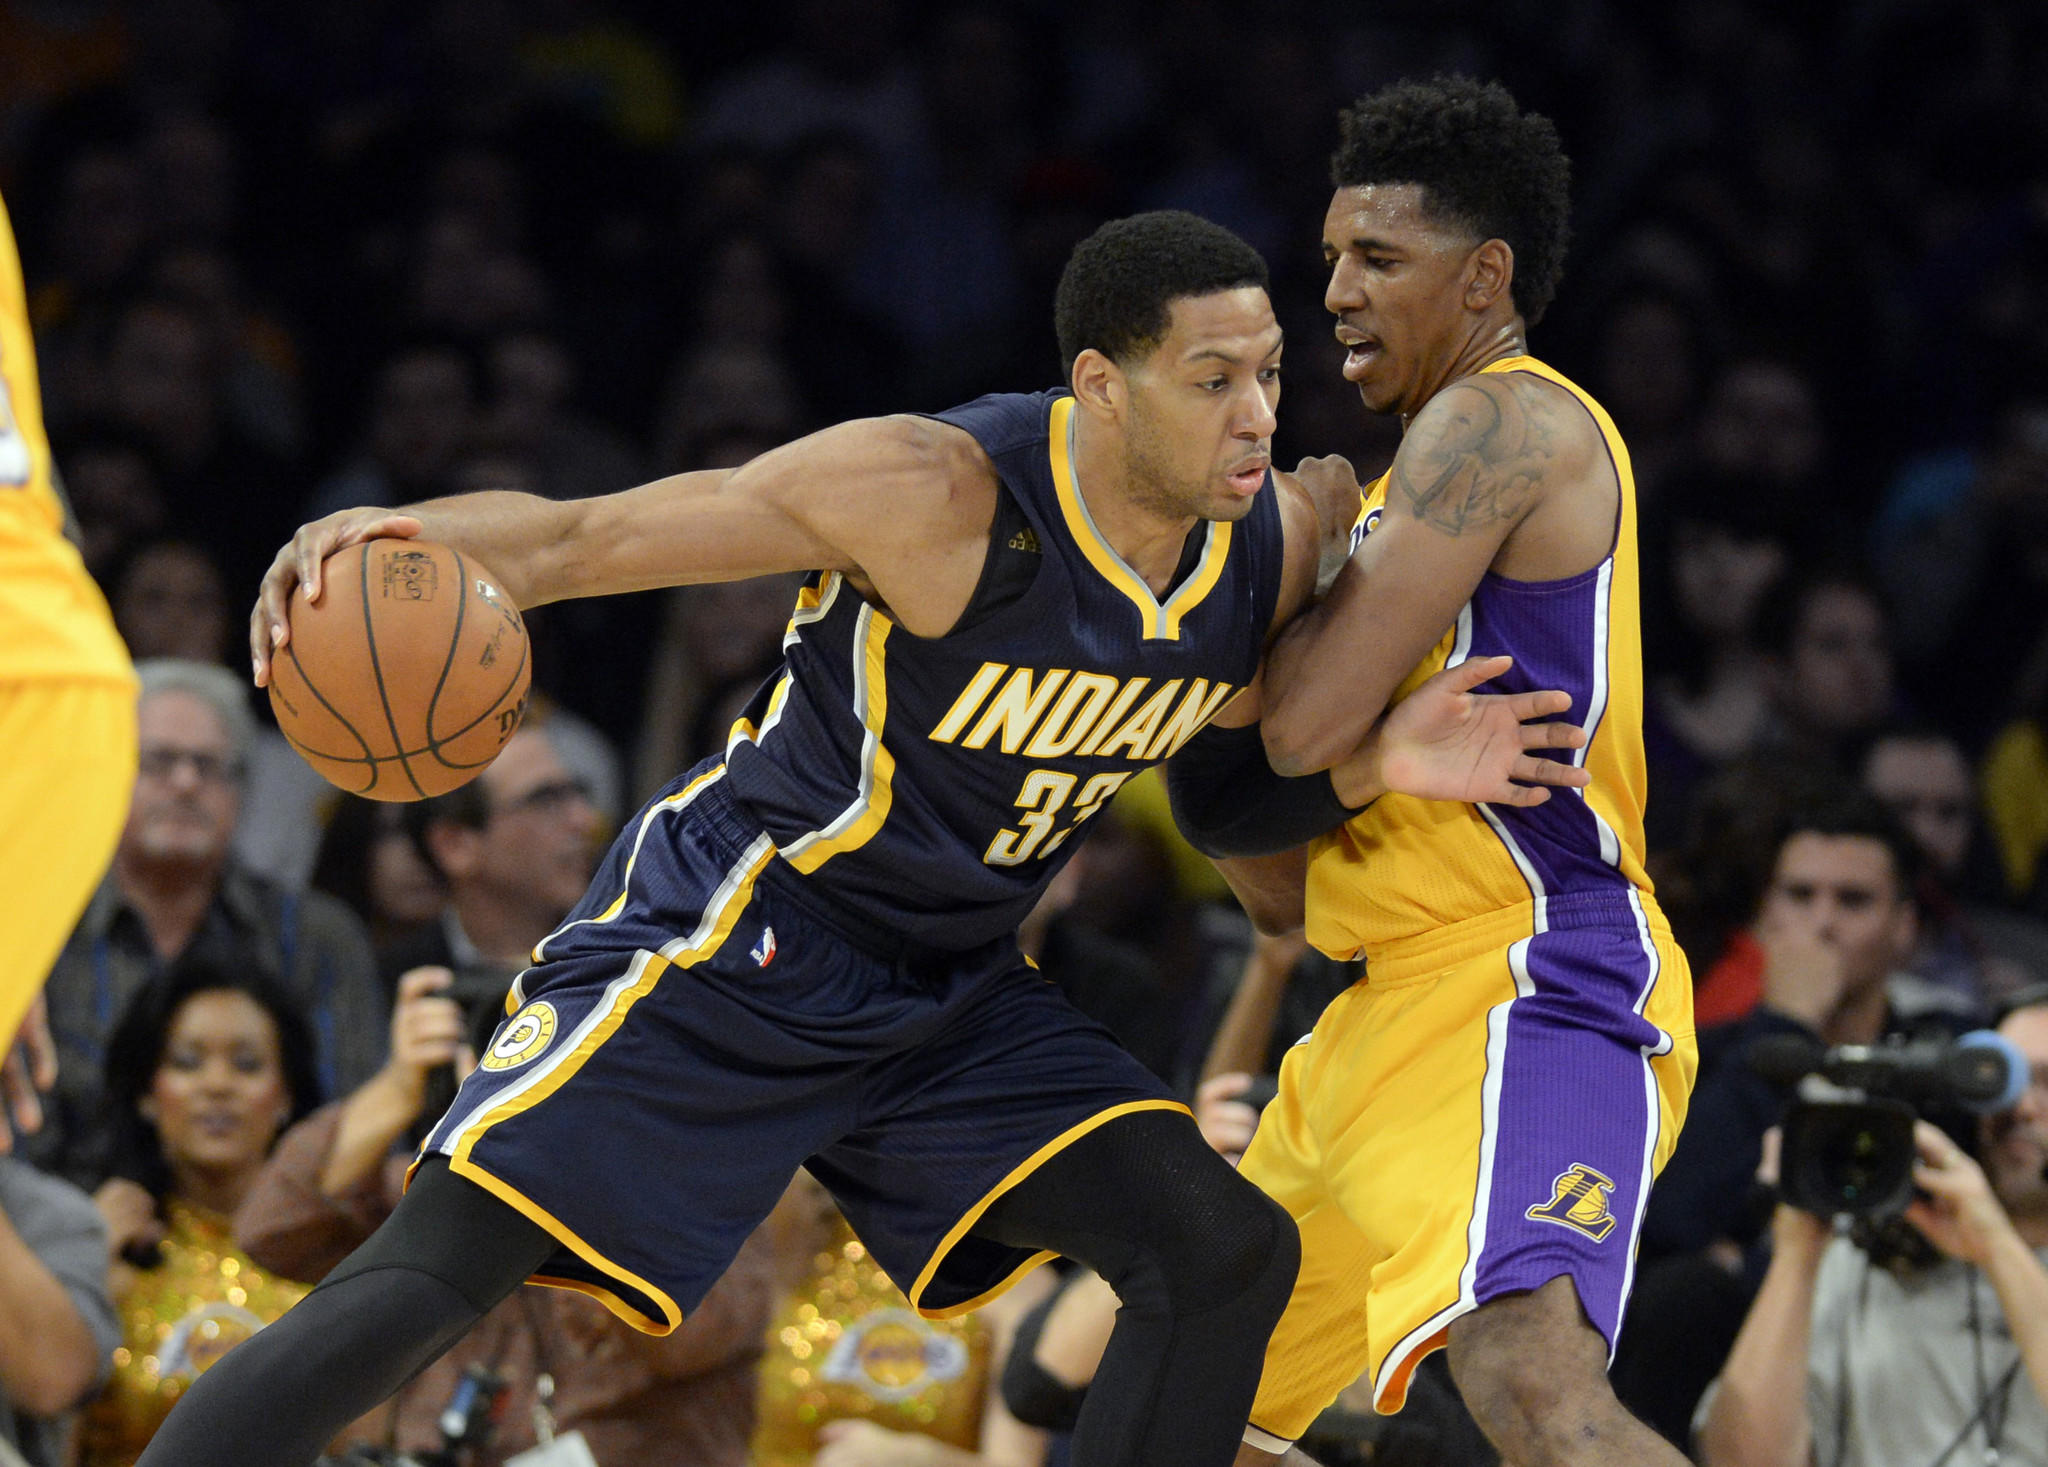 Lakers small forward Nick Young defends against small forward Danny Granger, then with the Pacers.